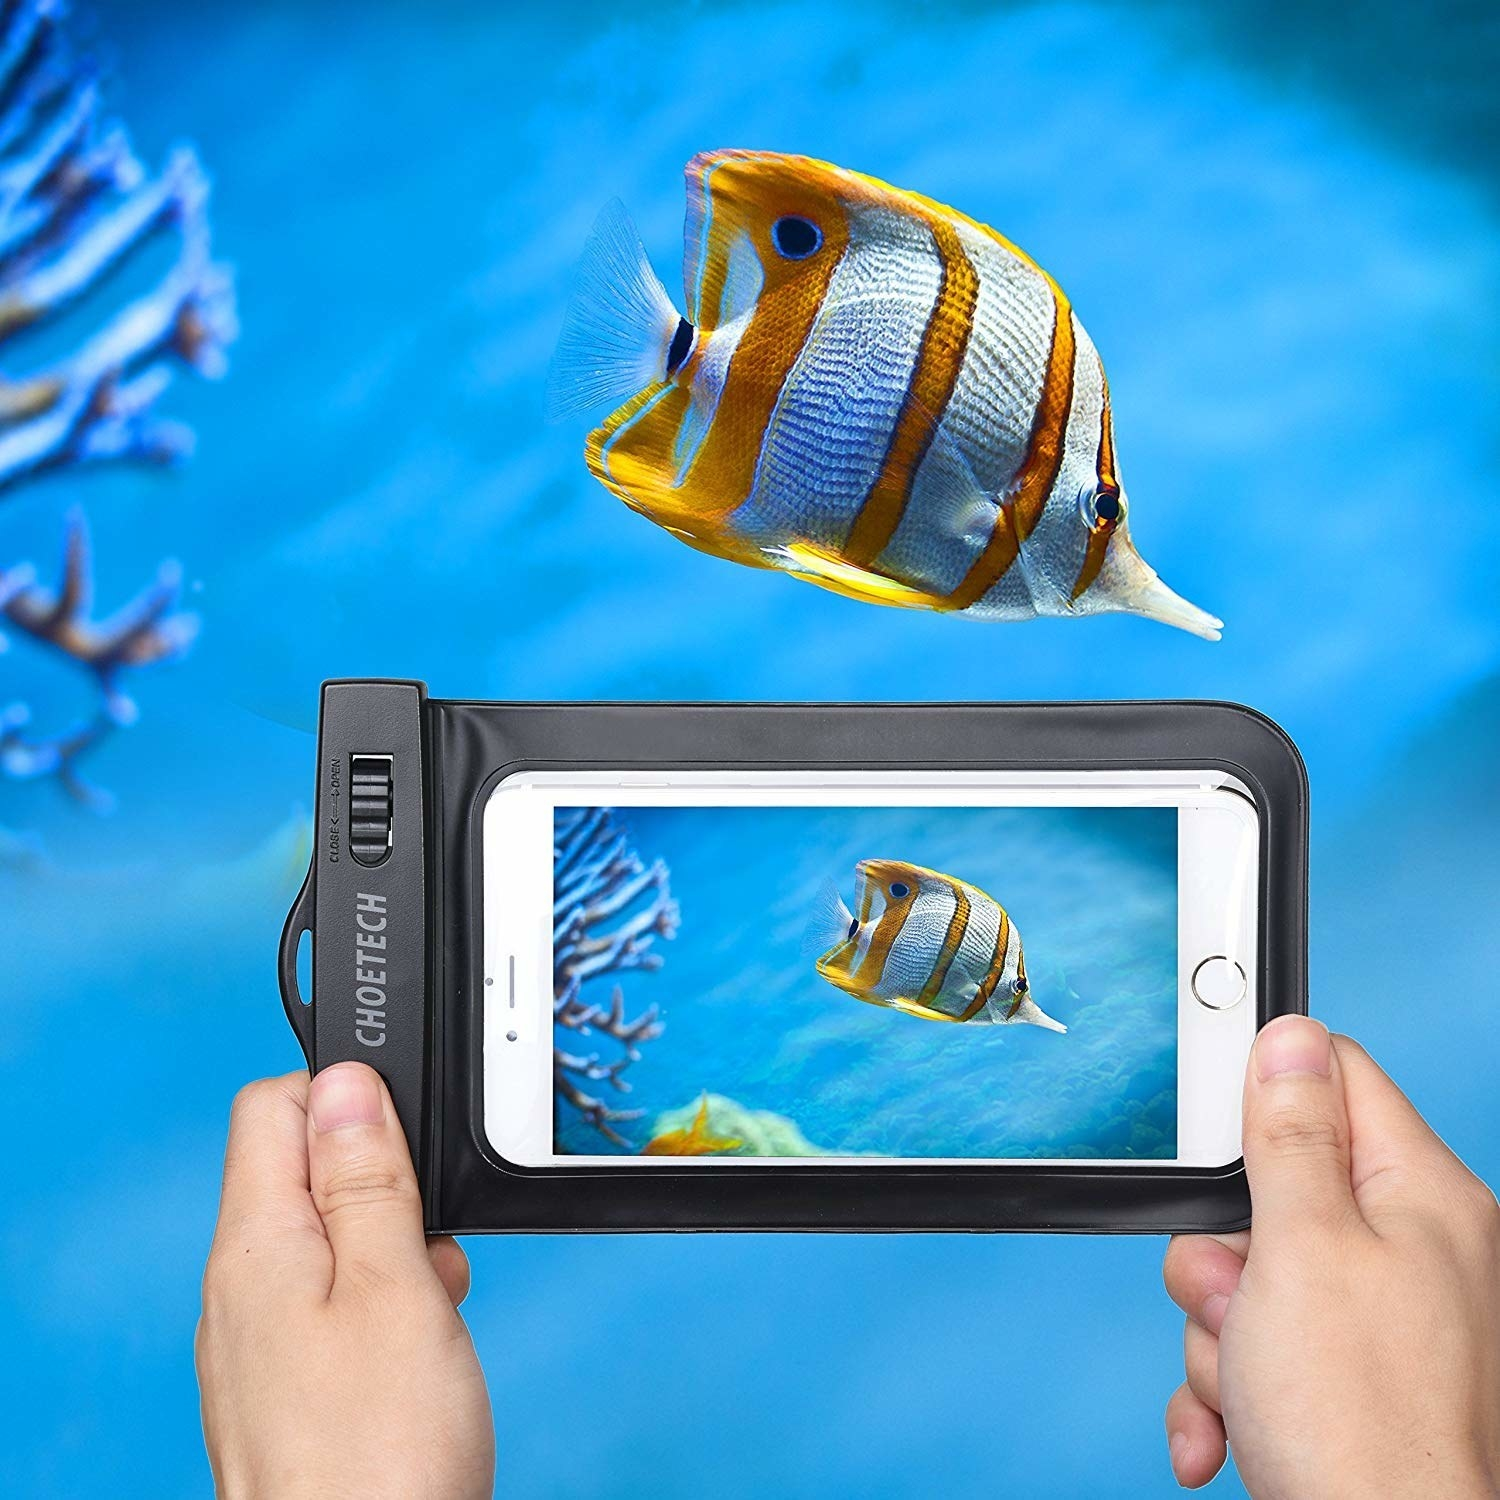 A person holding a waterproof plastic bag with their phone inside underwater to take a picture of a fish